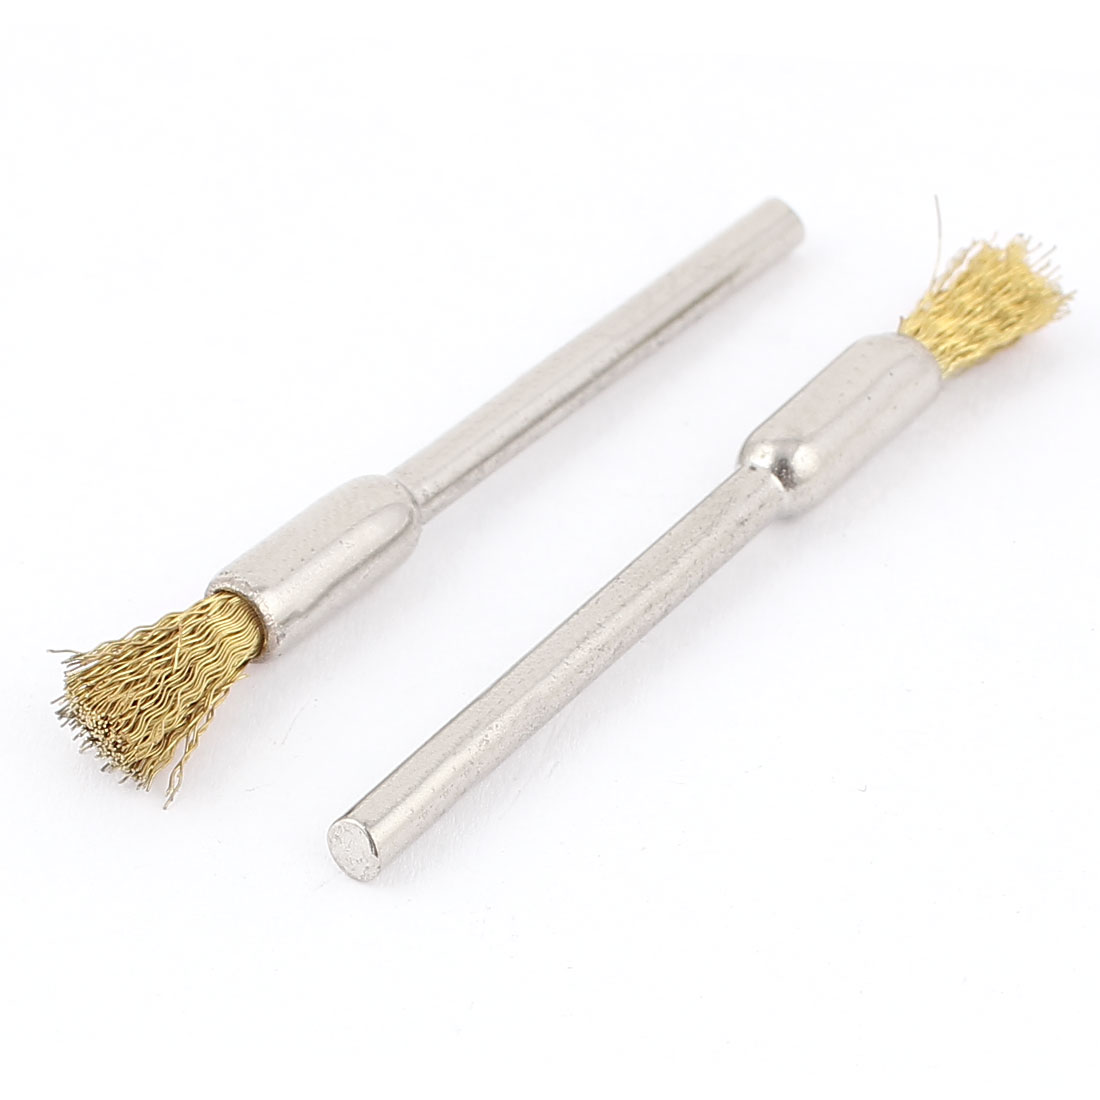 2pcs 5mm Dia Brass Wire 3mm Shank Pen Shape Polishing Brush Jewelry Tool